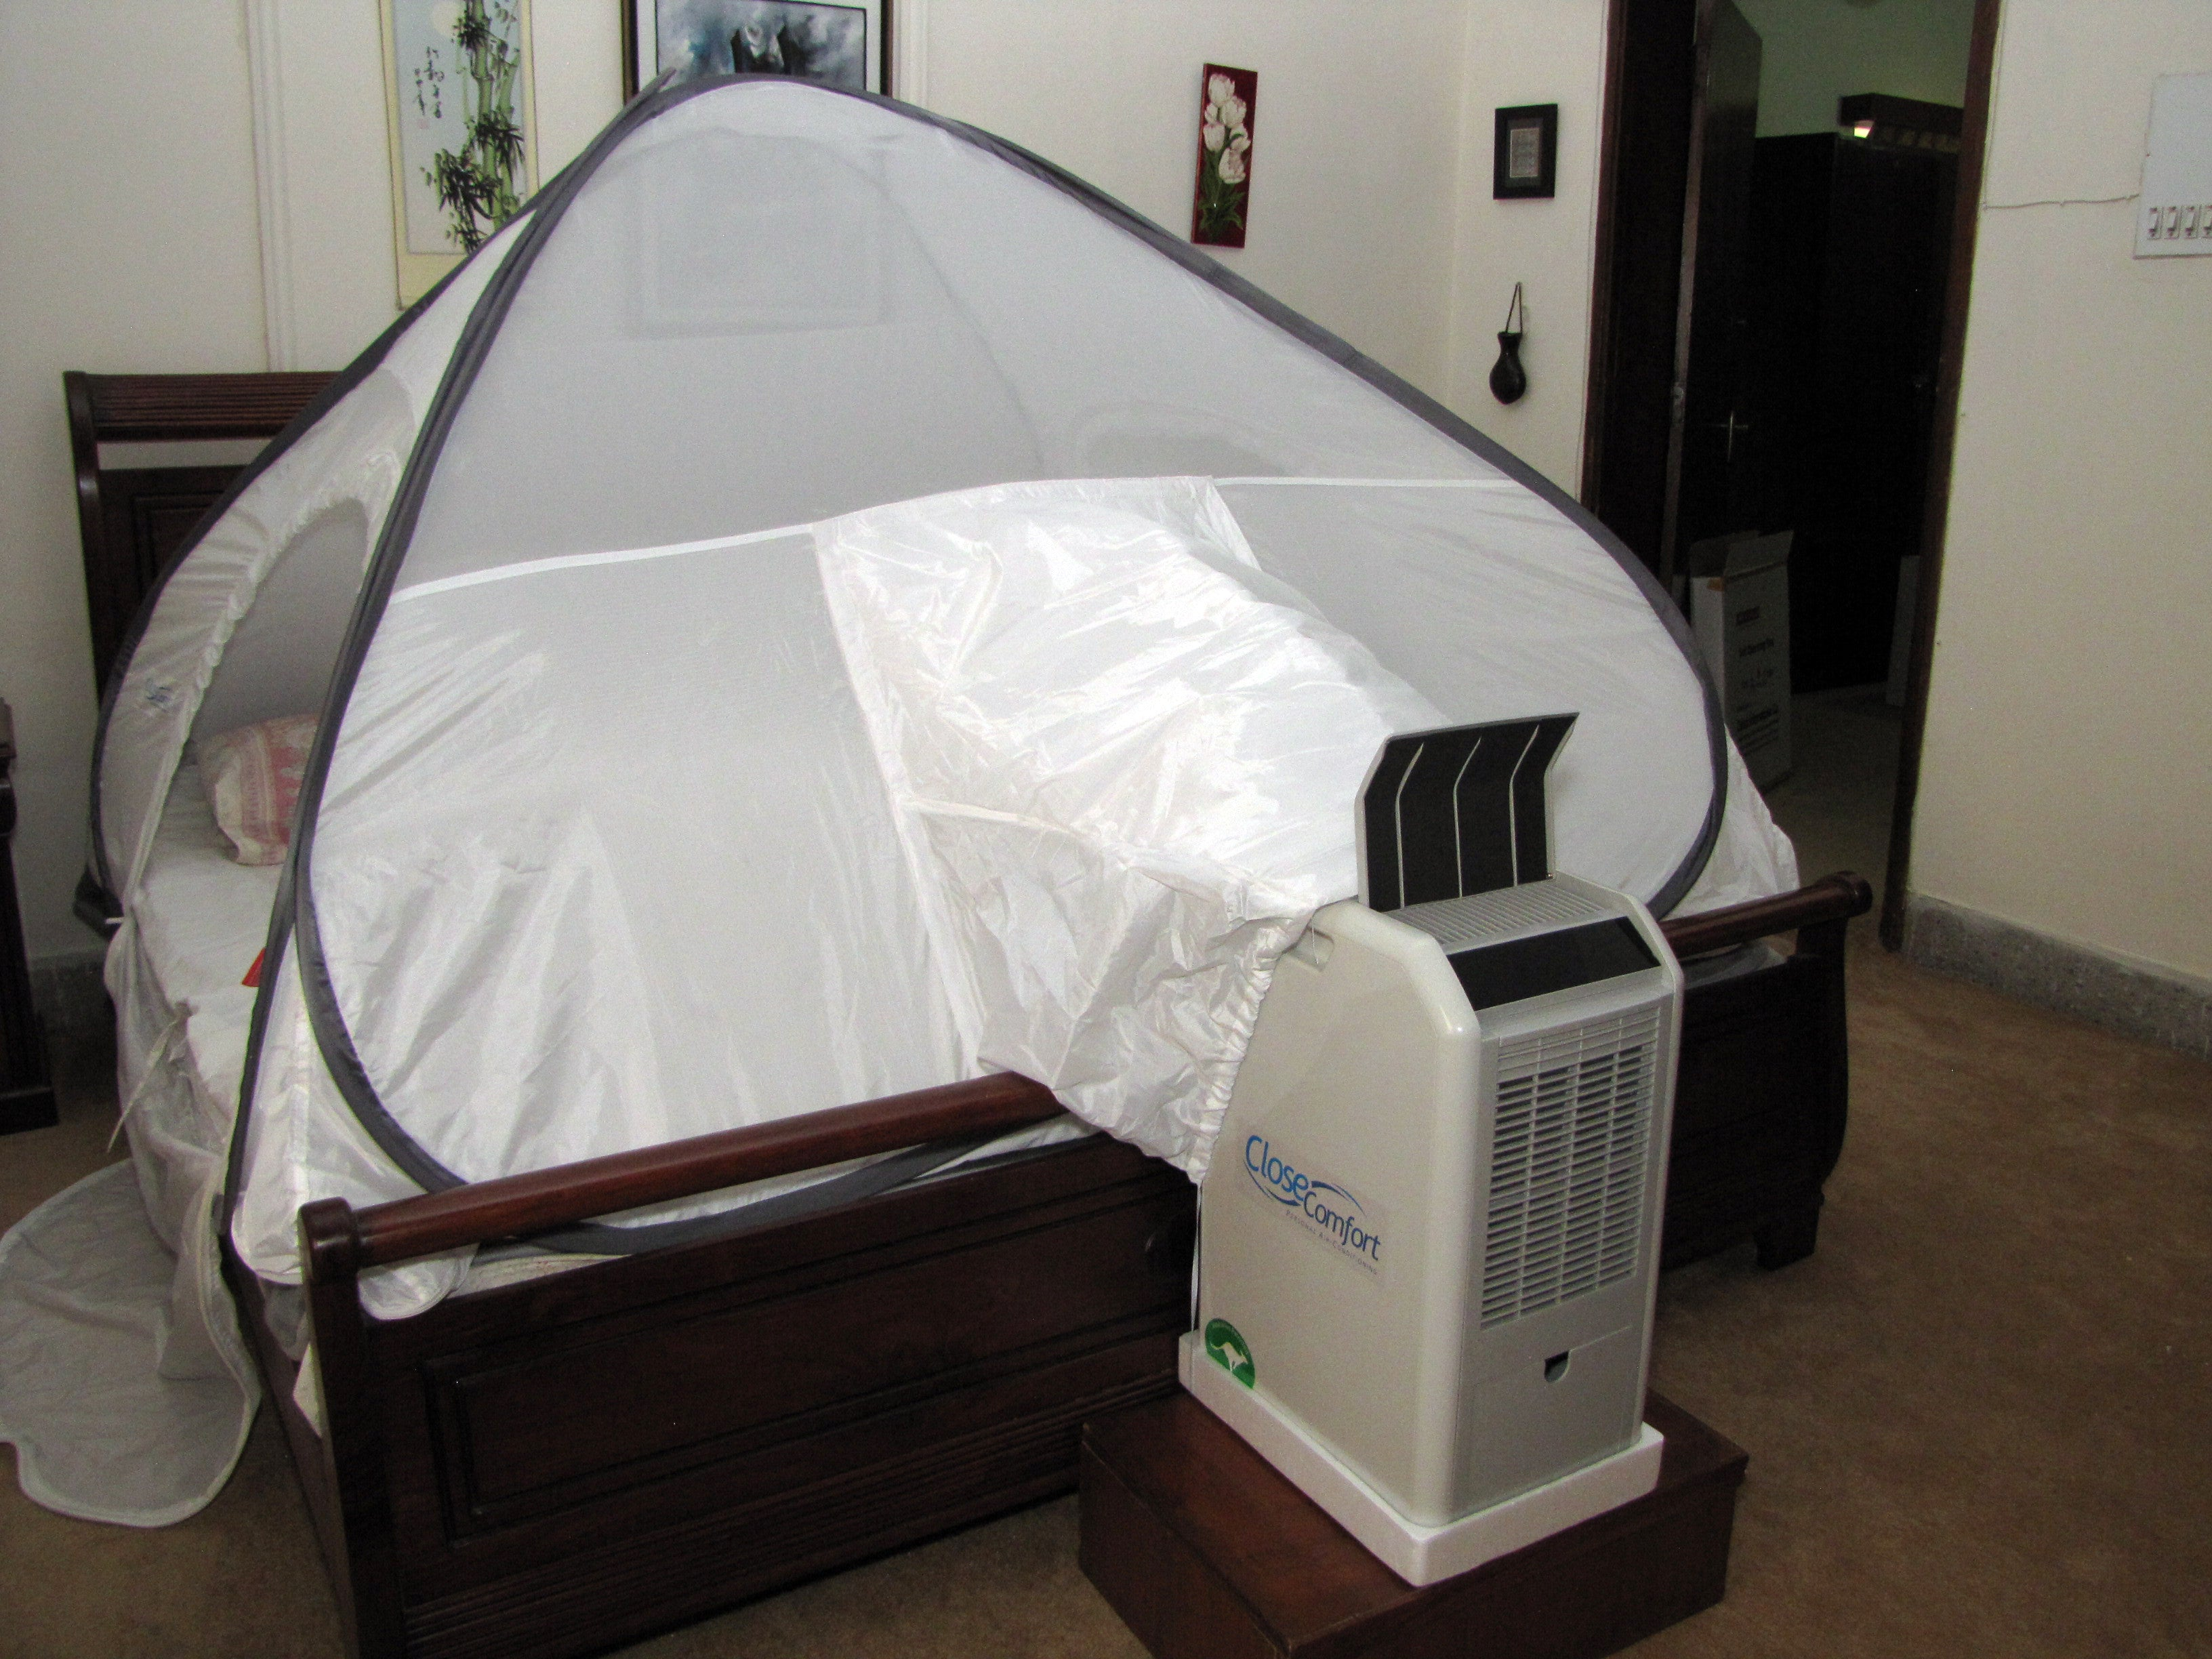 Energy Saver PC8 Air Conditioner with Free Pyramid Tent (Slightly Used)